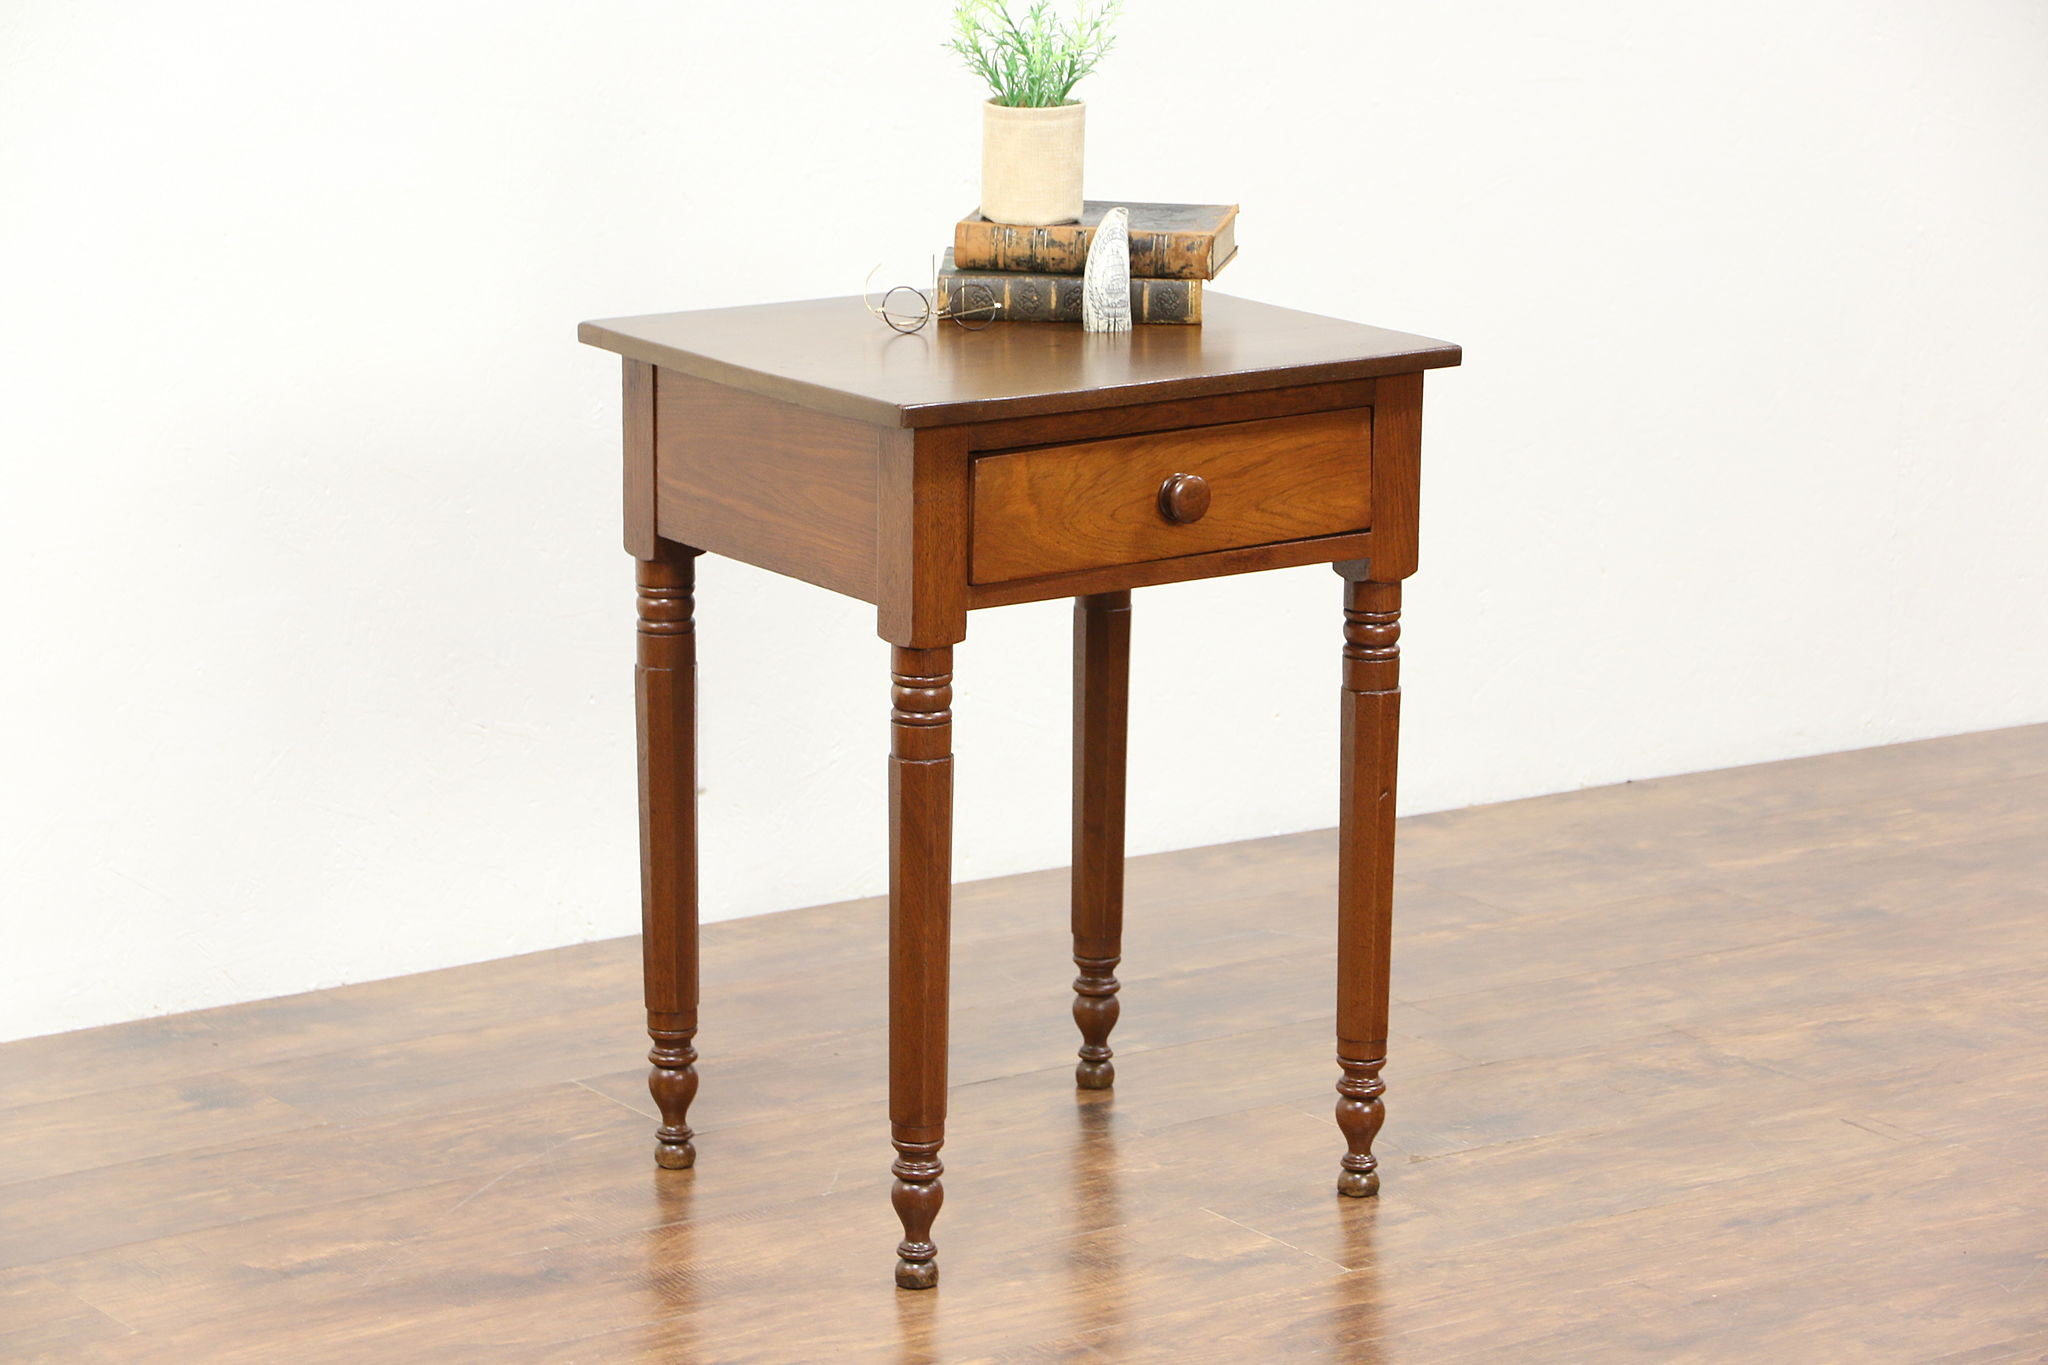 sold walnut 1840 antique nightstand l or end table oconal - Antique End Tables For Sale